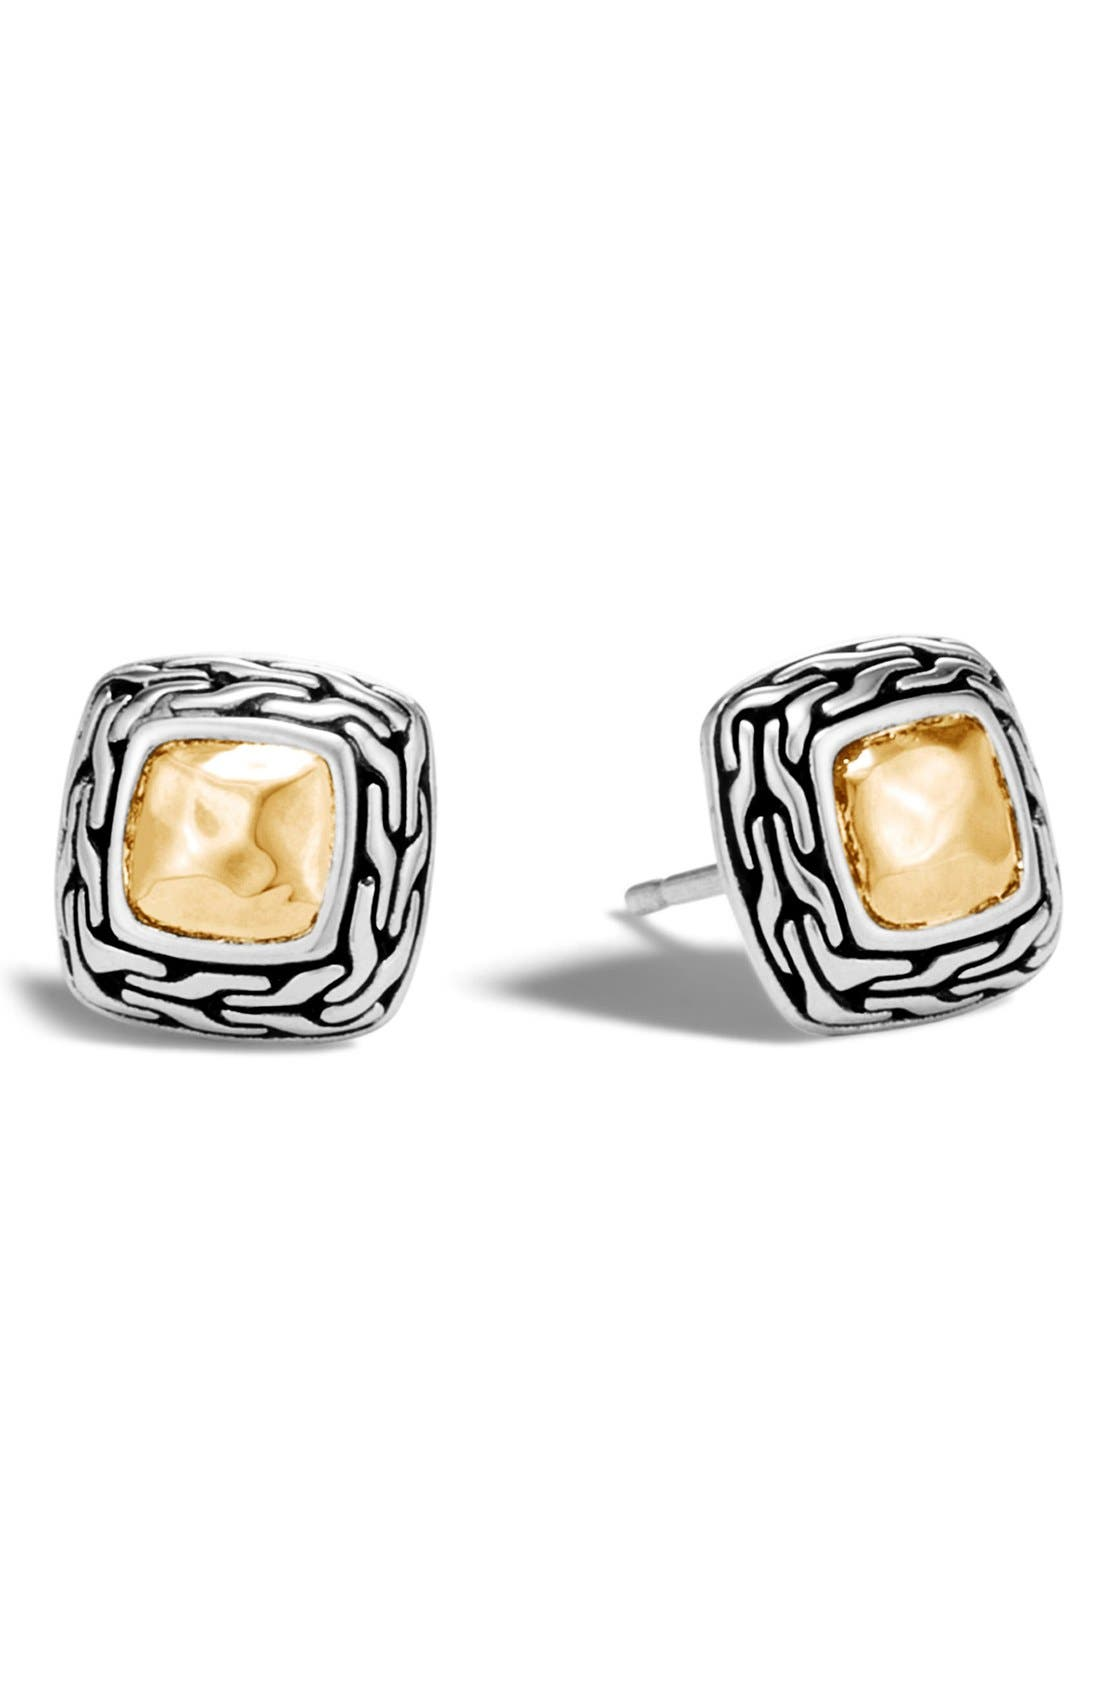 Heritage Stud Earrings,                         Main,                         color, Silver/ Gold